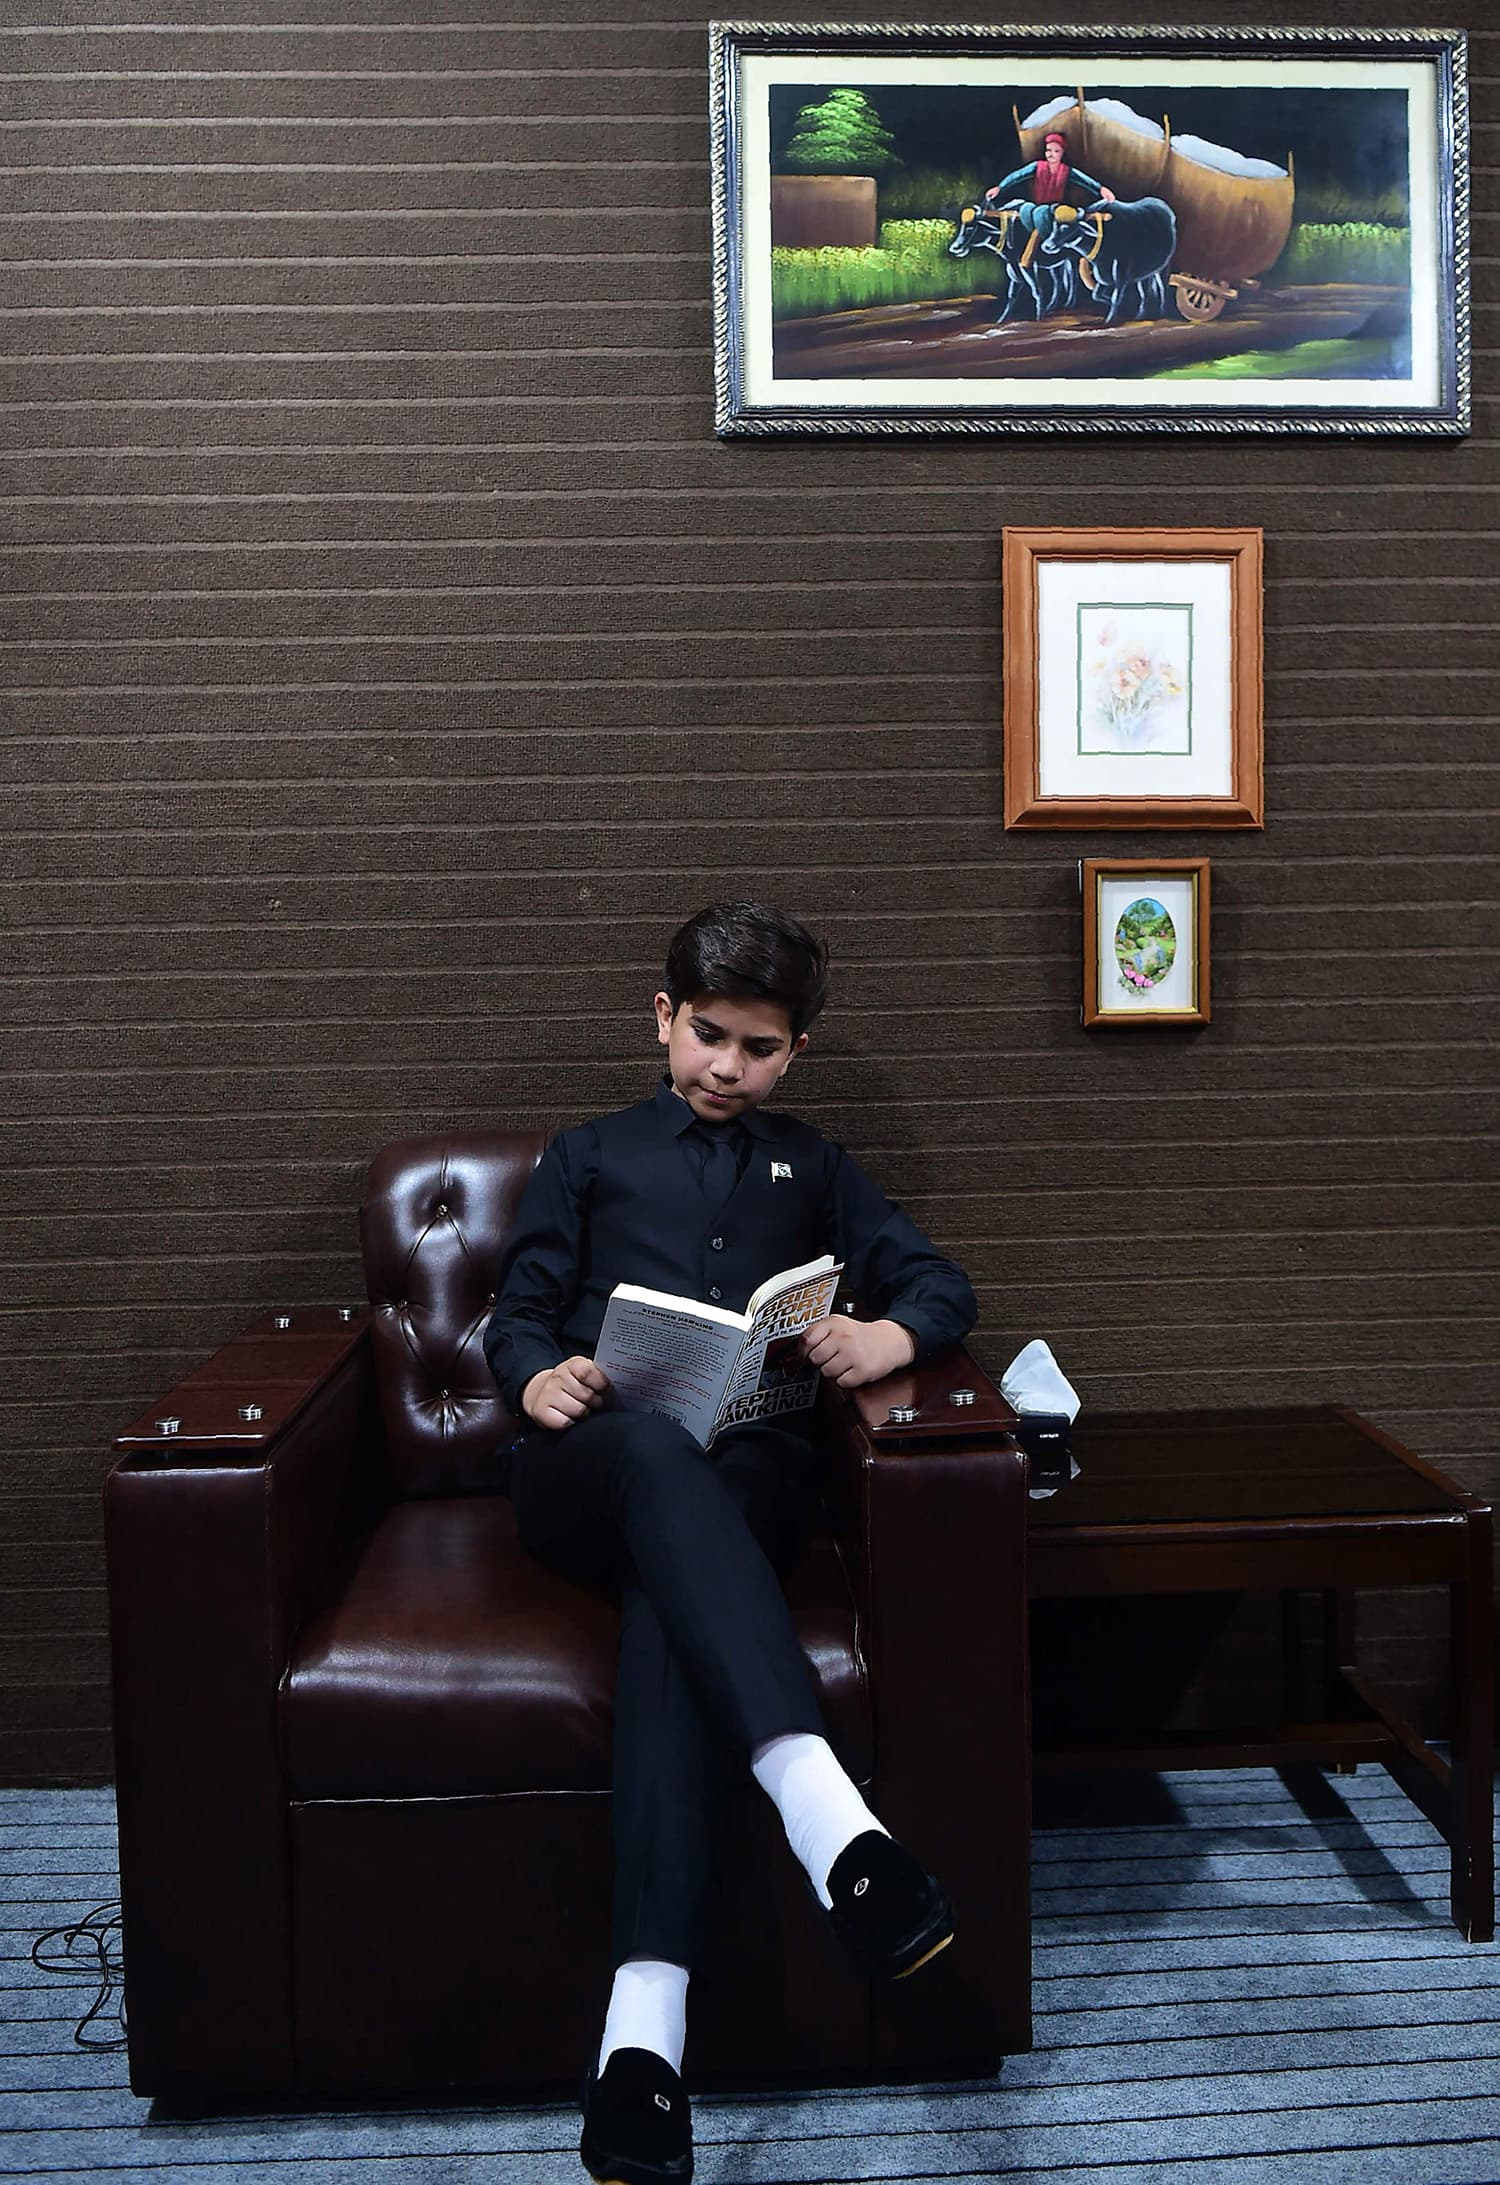 Hammad Safi reads a book at a languages academy in Peshawar. — AFP